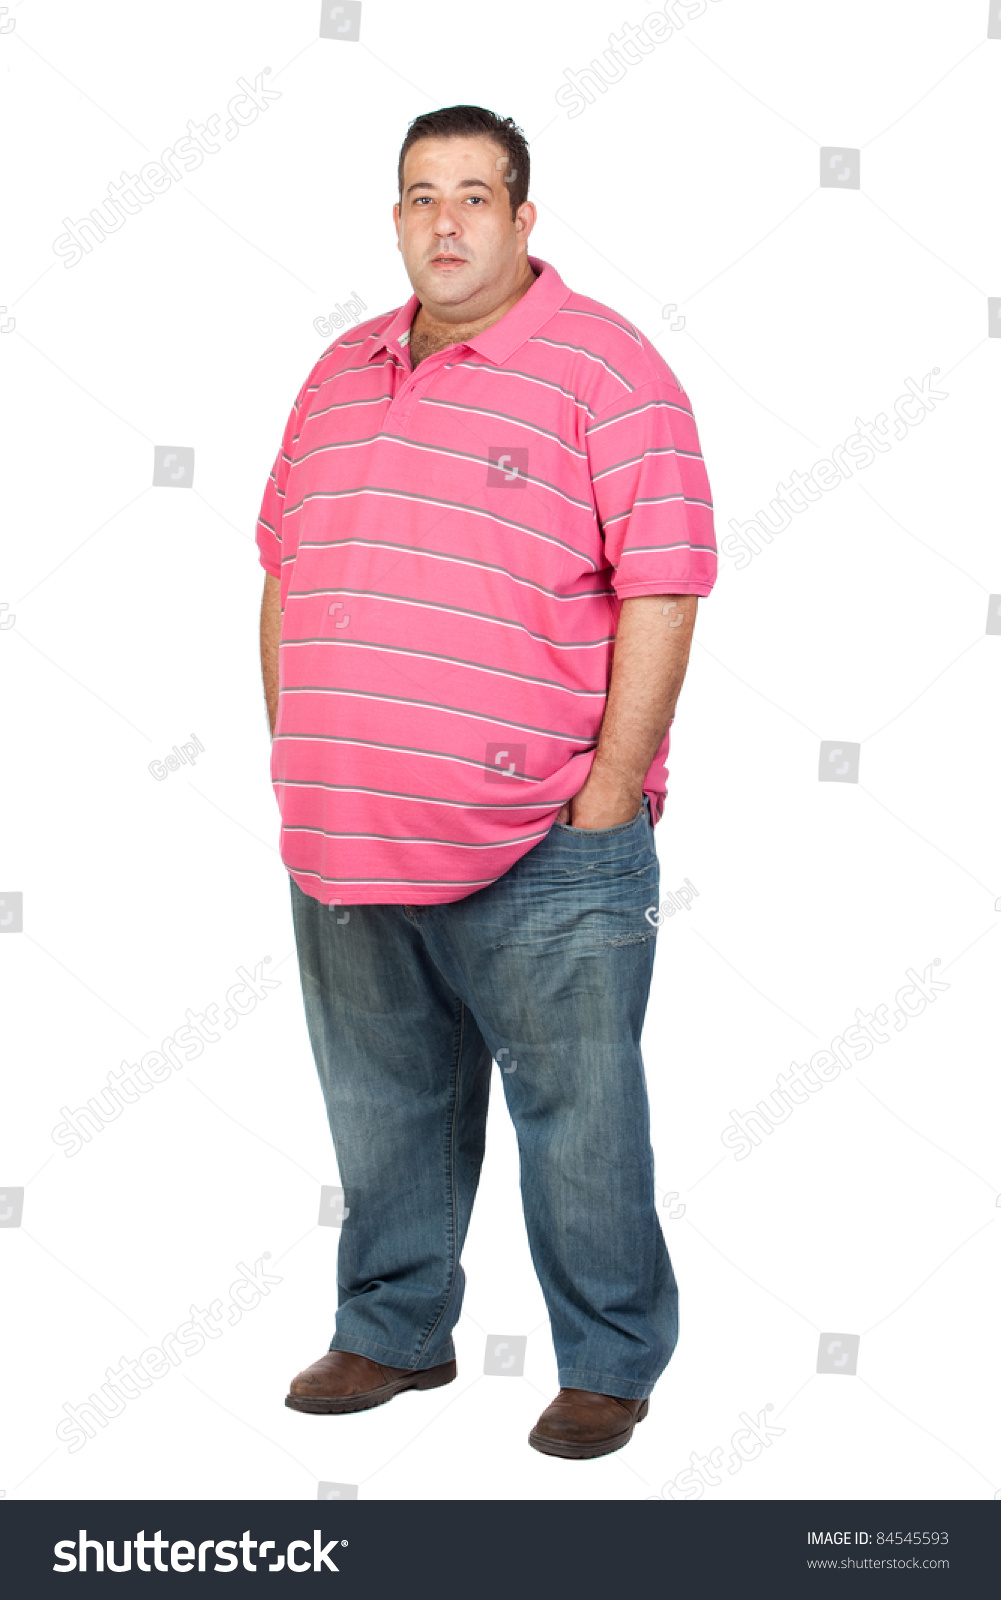 Fat Man Pink Shirt Isolated On Stock Photo 84545593 - Shutterstock